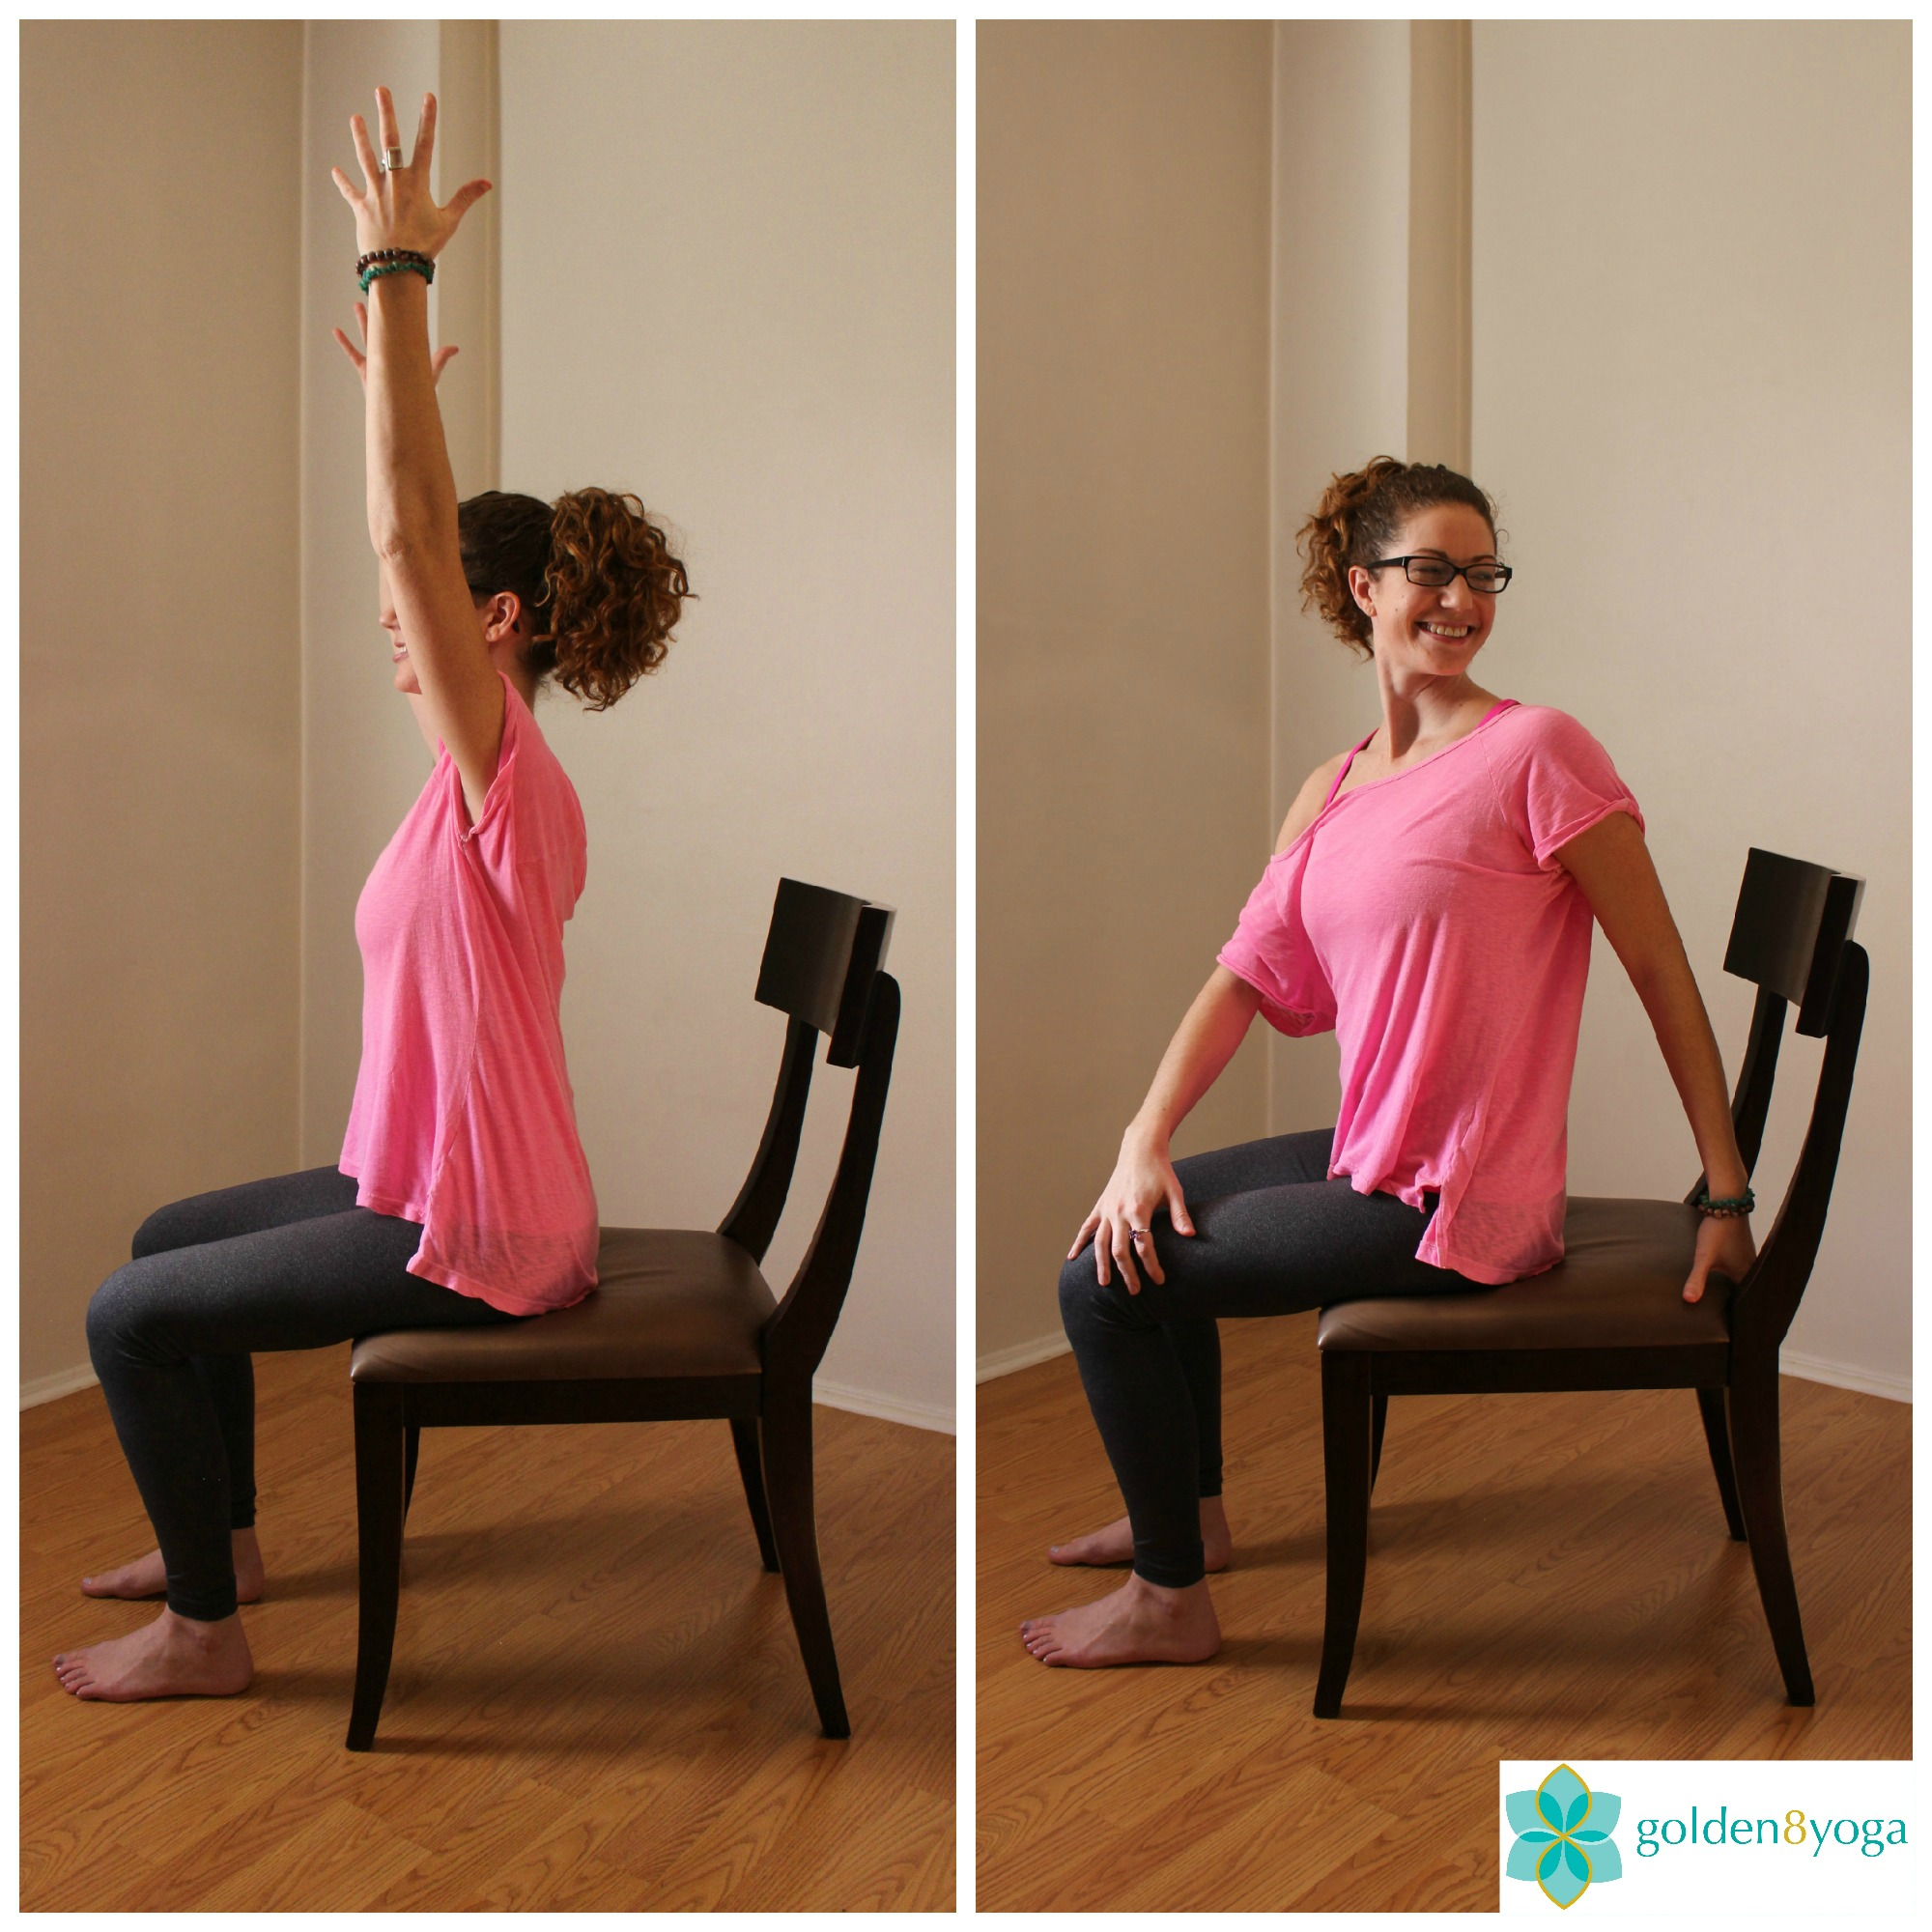 SEATED SPINAL TWIST  Try this pose if you have stiffness of your spine or back muscles. Benefits include tension relief in the back, stimulates your kidneys, spleen and liver, and massages the stomach easing digestive problems.  1. Sit comfortably in a chair with your feet hip width distance and parallel to each other. Sit up tall with your back, neck and head in a straight line and shoulders relaxed.  2. Inhale and extend arms up towards the ceiling. Feel each side body lengthen and stretch upward.  3. Exhale and twist to the left placing your left hand at the back of the chair and your right hand pressing on the outside of your left thigh. To increase the twist take your gaze over your left shoulder.   4. Hold the pose for 5 seconds breathing normally. Keep your buttocks firmly planted on the chair.   5. Inhale and release back to center and repeat on the opposite side. You can flow back and forth if that feels good for you. You can do this several times throughout the day.